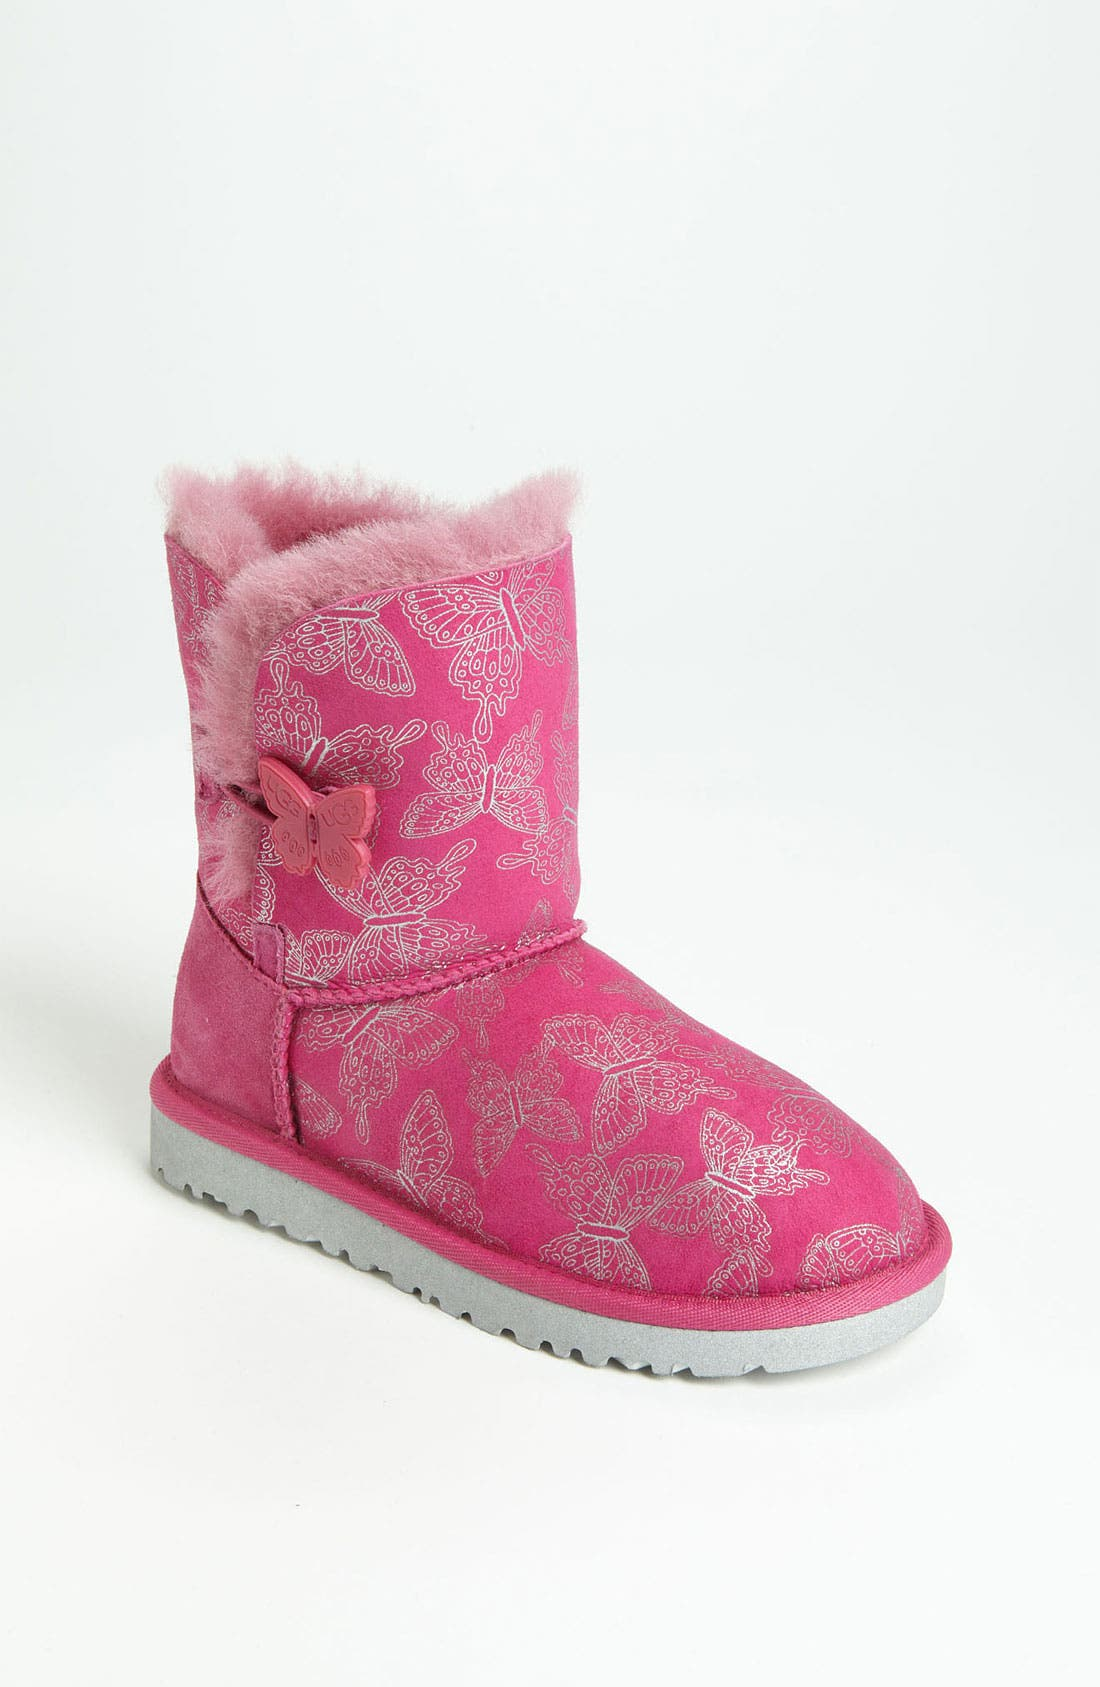 Alternate Image 1 Selected - UGG® Australia 'Bailey Button - Butterfly' Boot (Walker, Toddler, Little Kid & Big Kid)